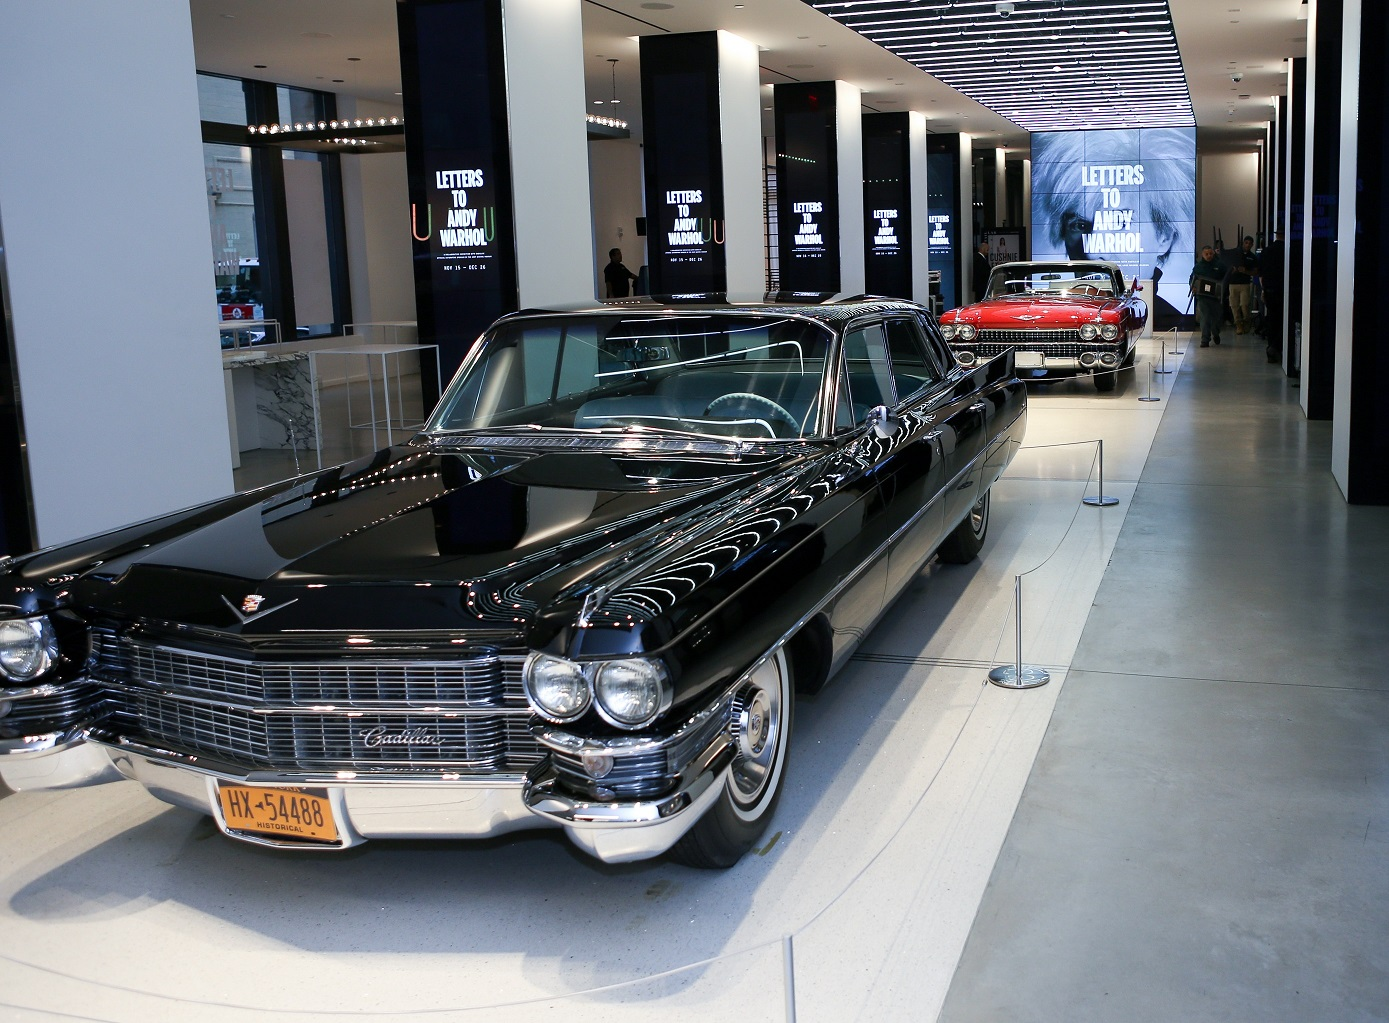 Cadillac Letters Andy Warhol at Sole DXB The Luxe Diary